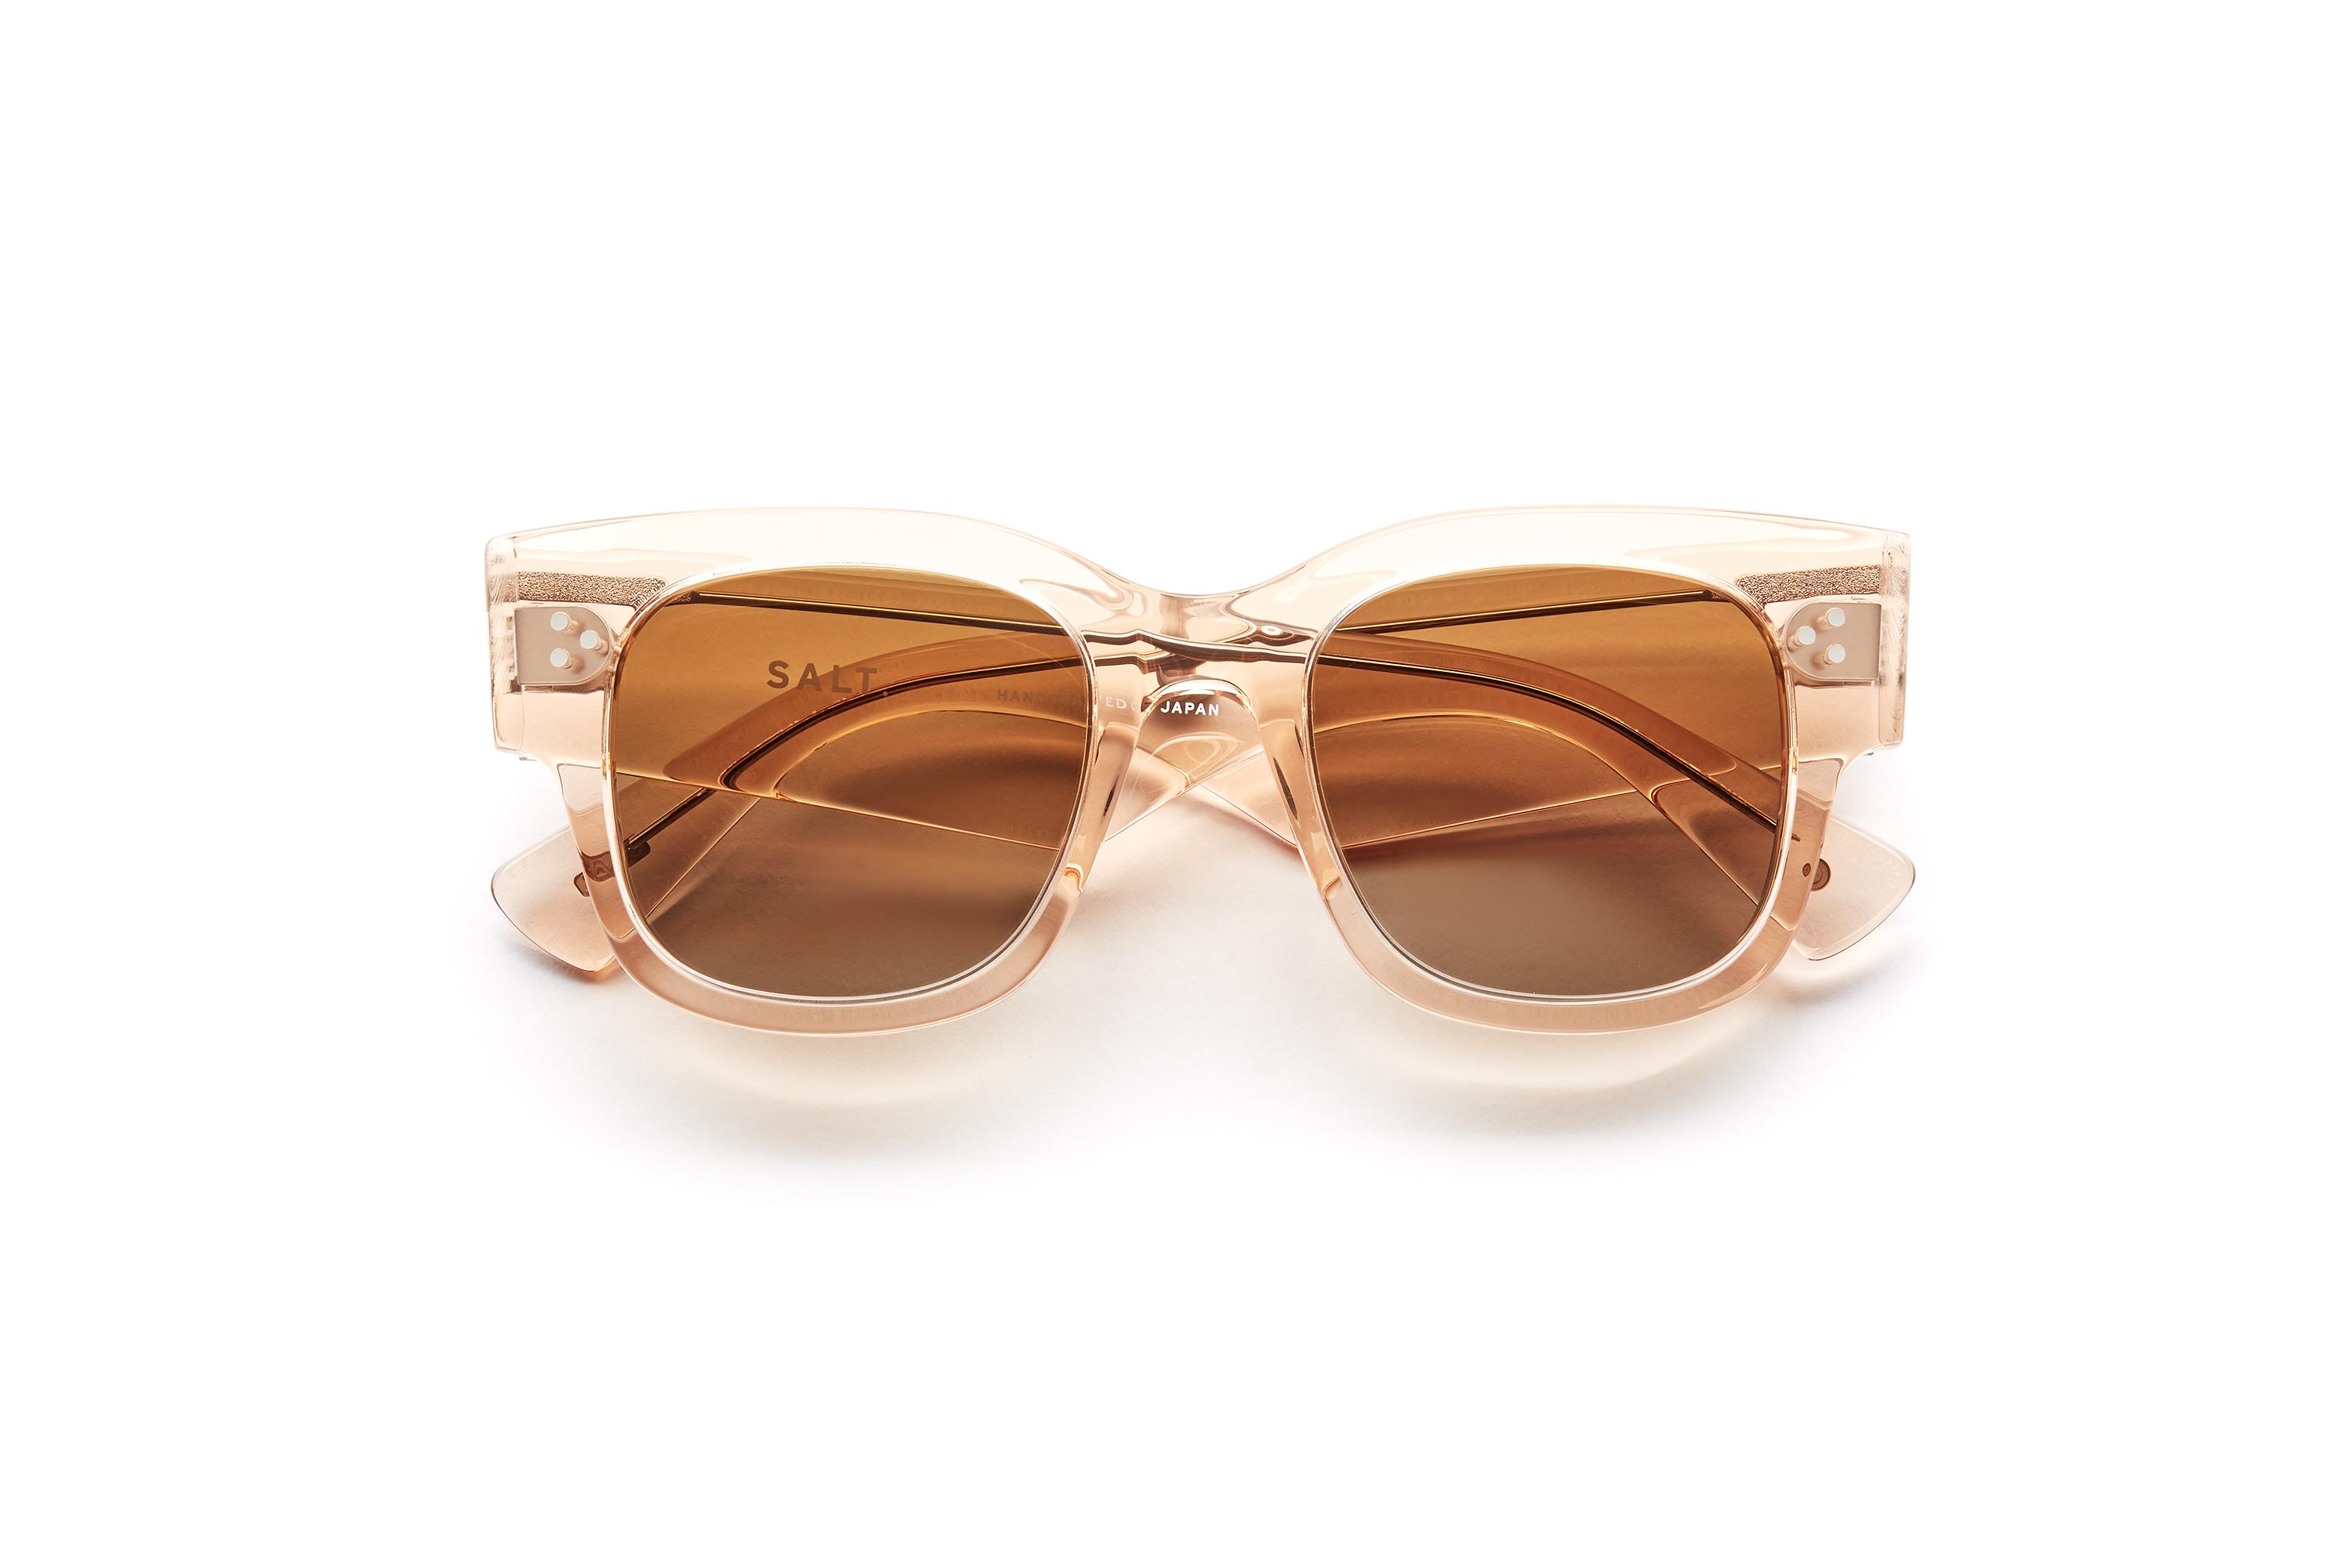 SALT. | FRAME: TAVITA in Rose Antique, lenses: CR39 Ashland Gradient Polarized